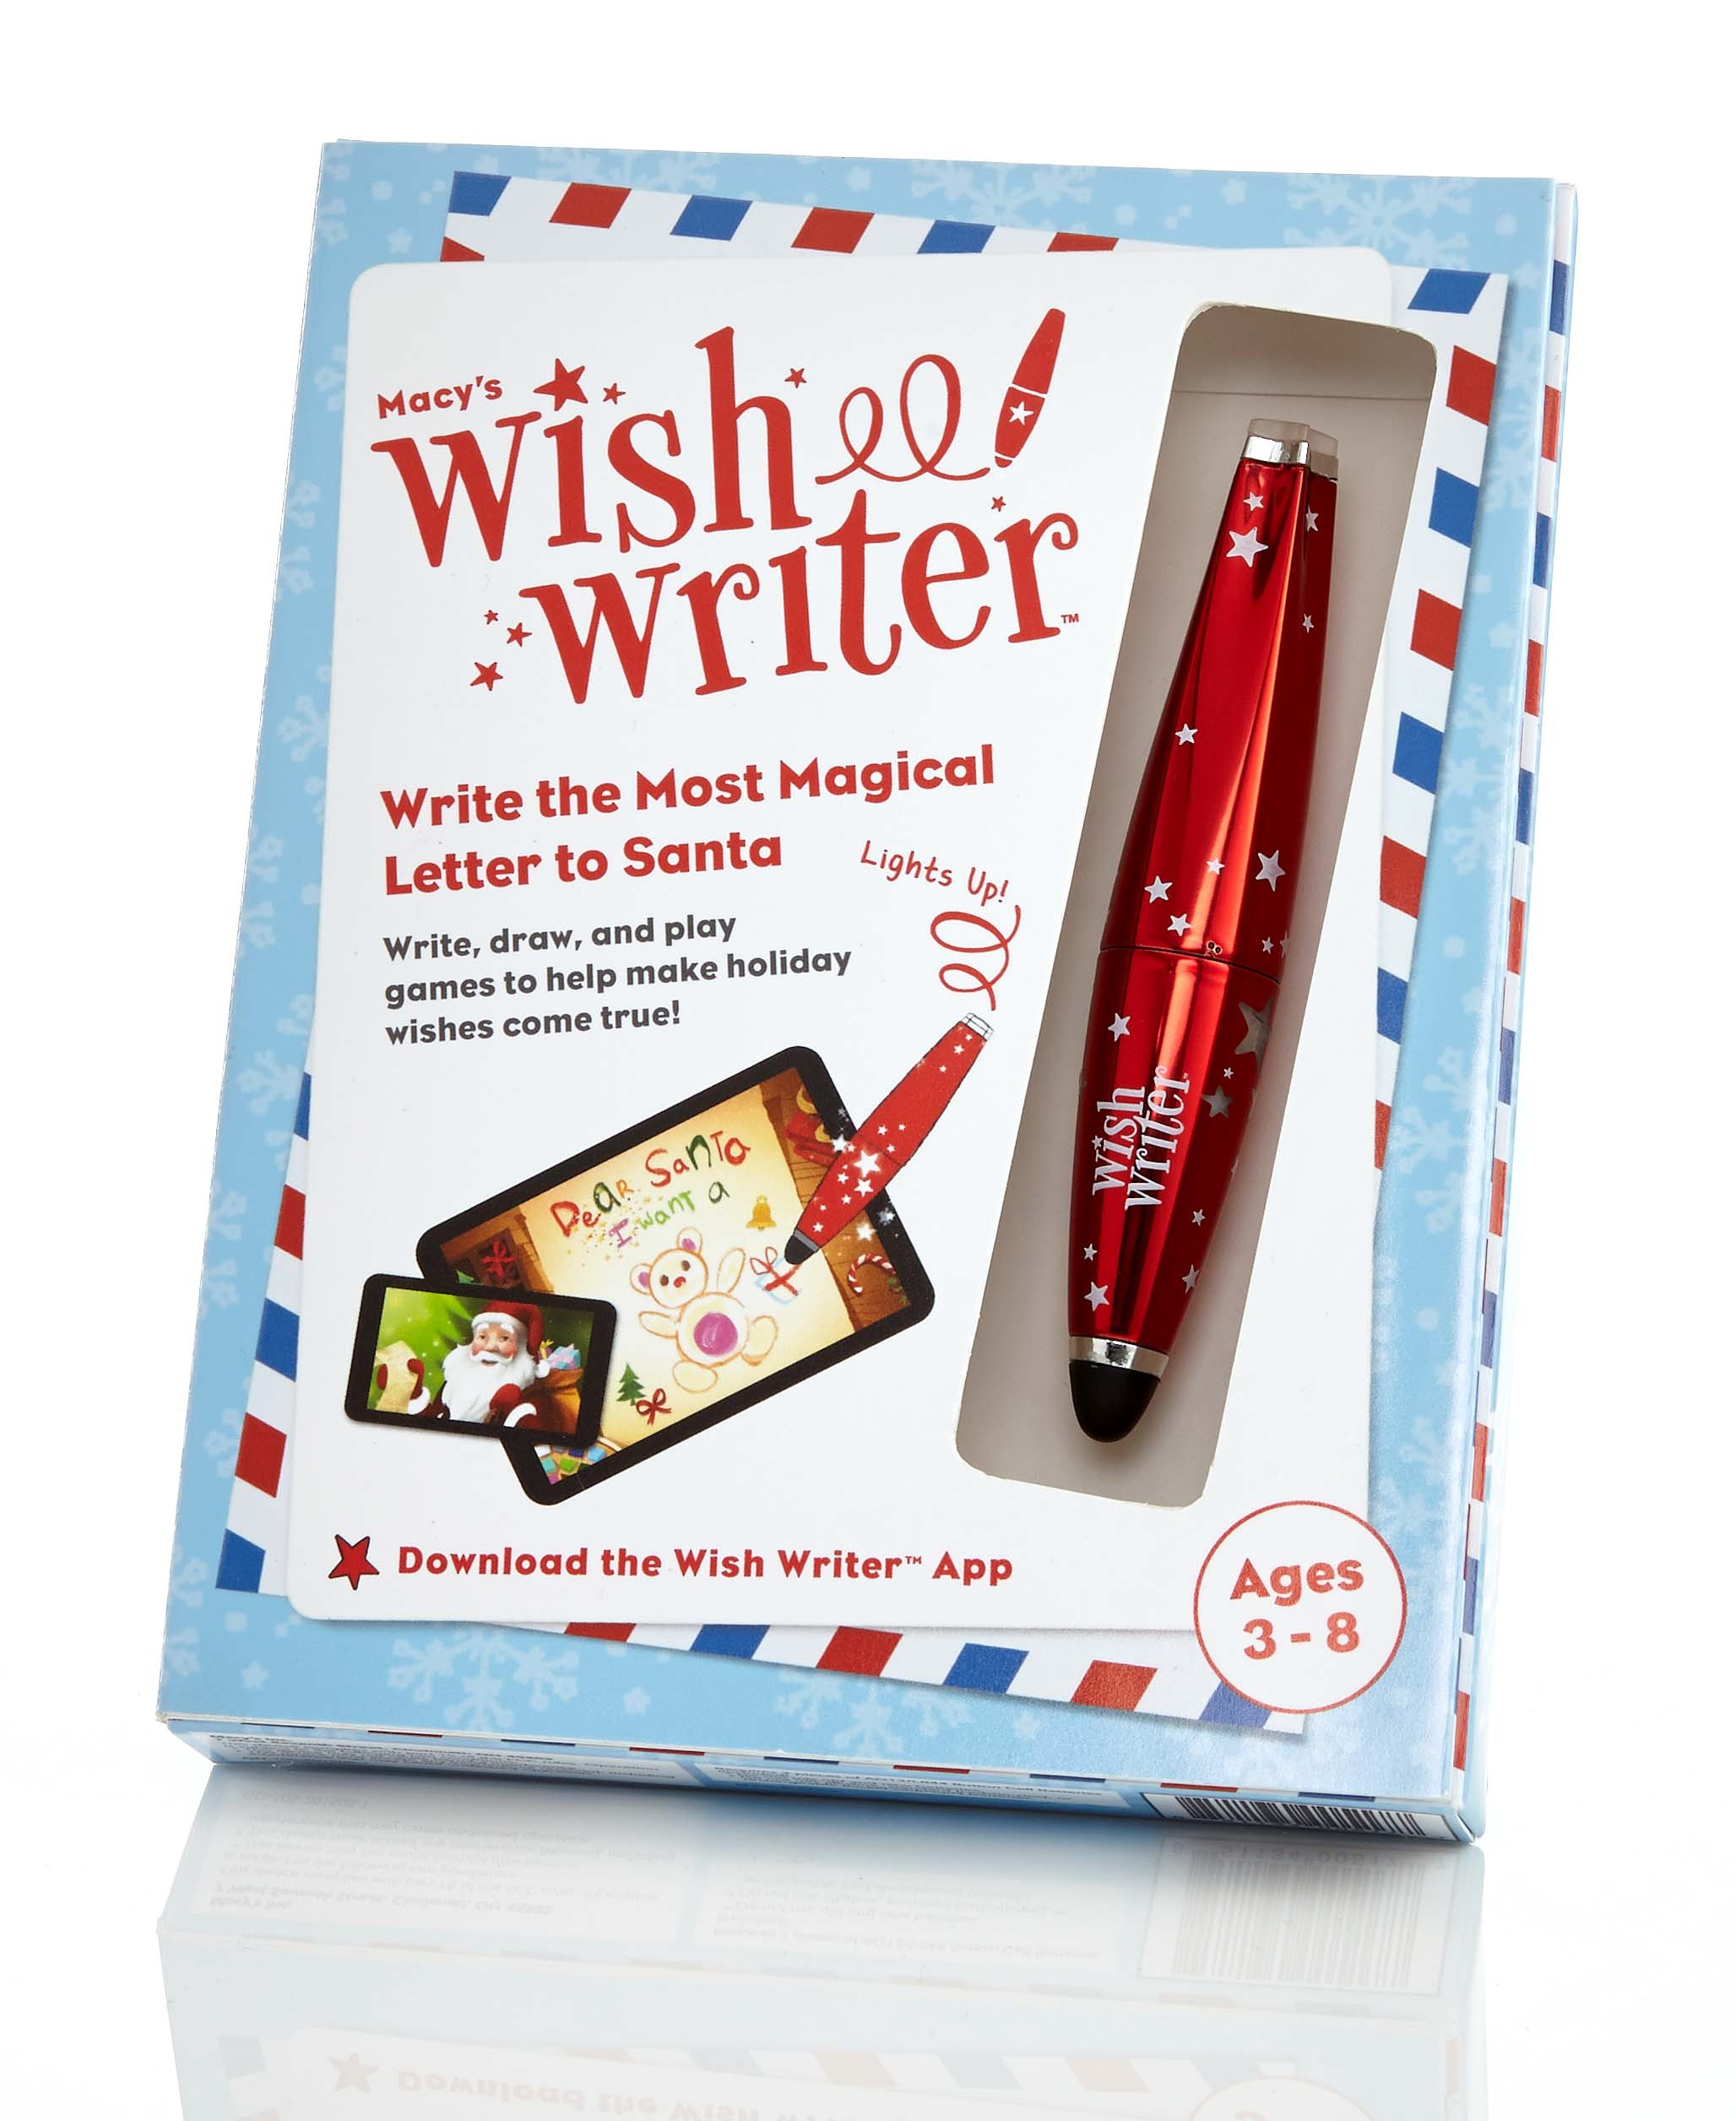 With Macy's new Wish Writer stylus and app, kids can play interactive games and write magical letters to Santa; $14.99 each, one dollar from each purchase will be donated to Make-A-Wish® (Photo: Business Wire)